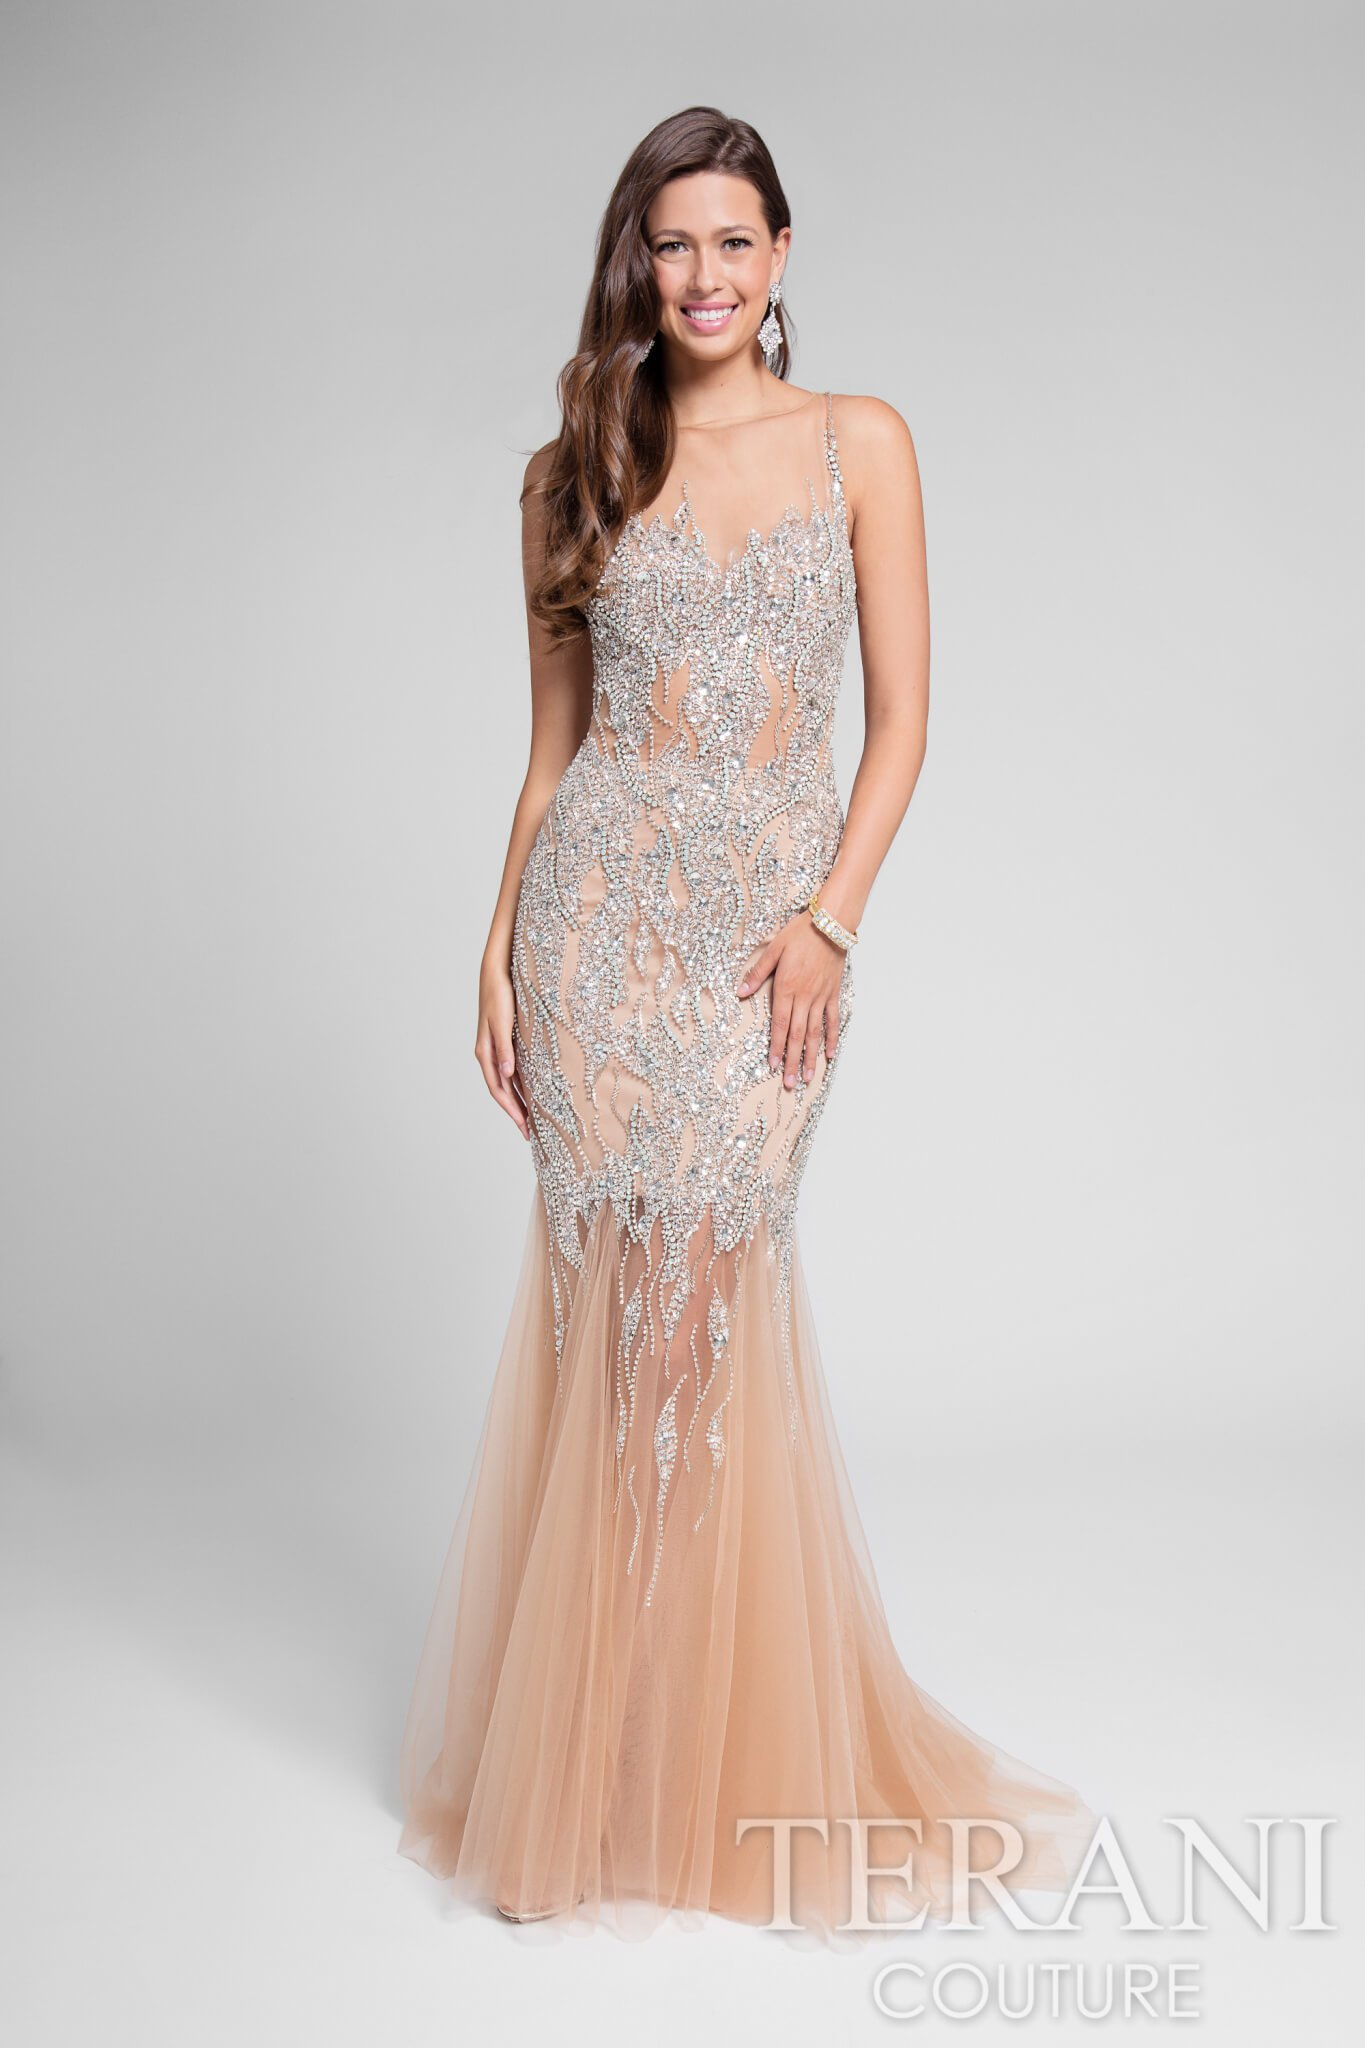 Prom Dresses 2016 &amp- 2017 Styles - Terani Couture